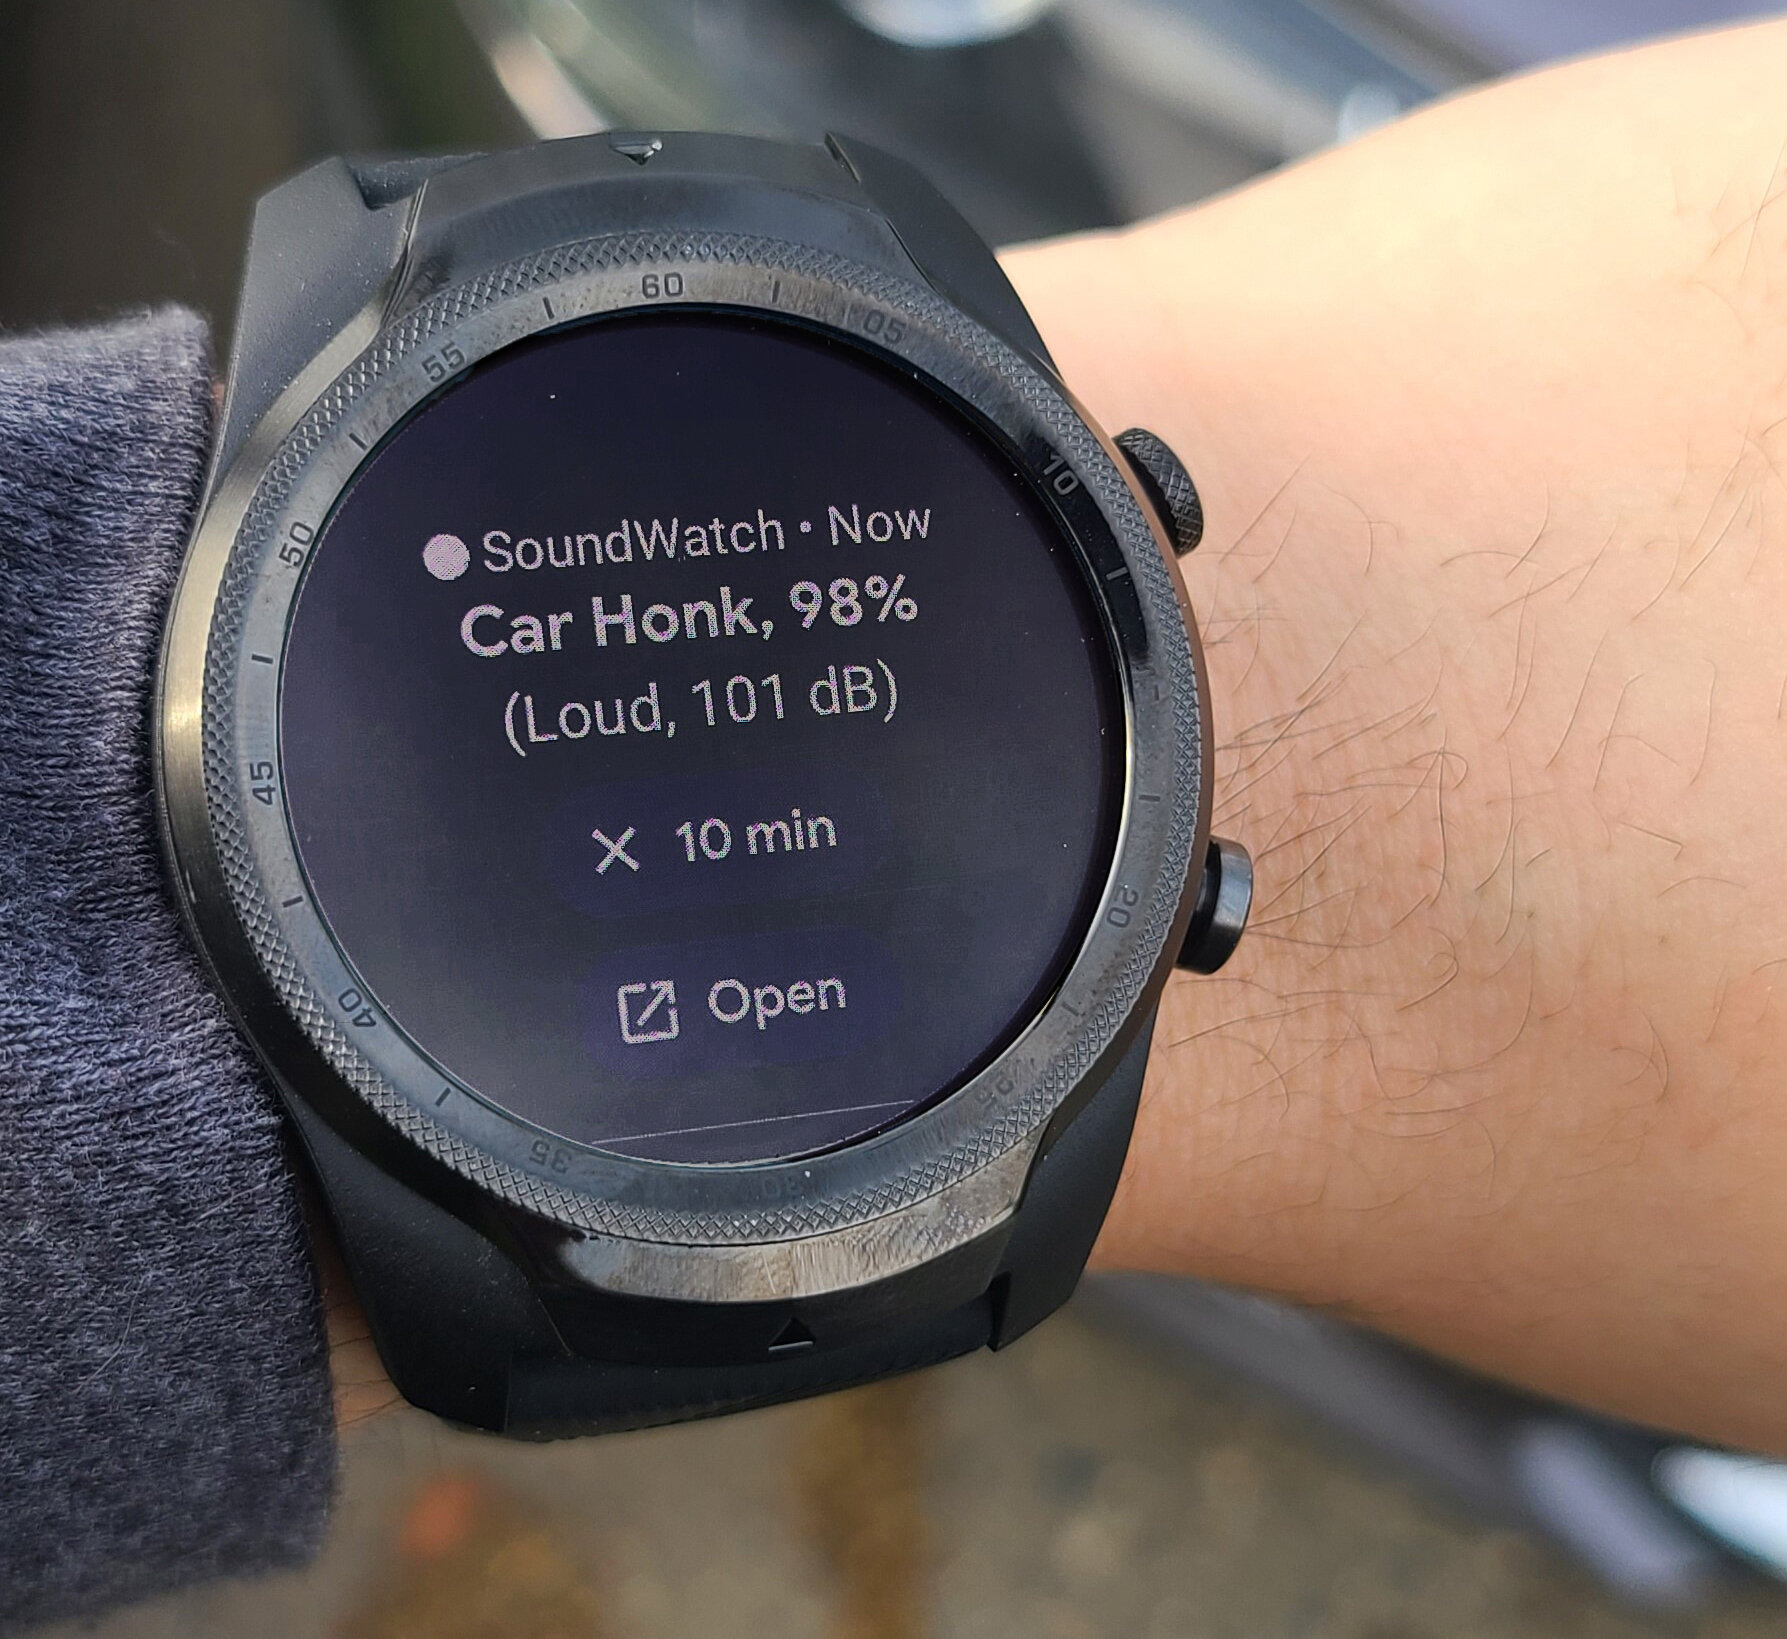 New smartwatch app alerts d/Deaf and hard-of-hearing users to birdsong, sirens and other desired sounds